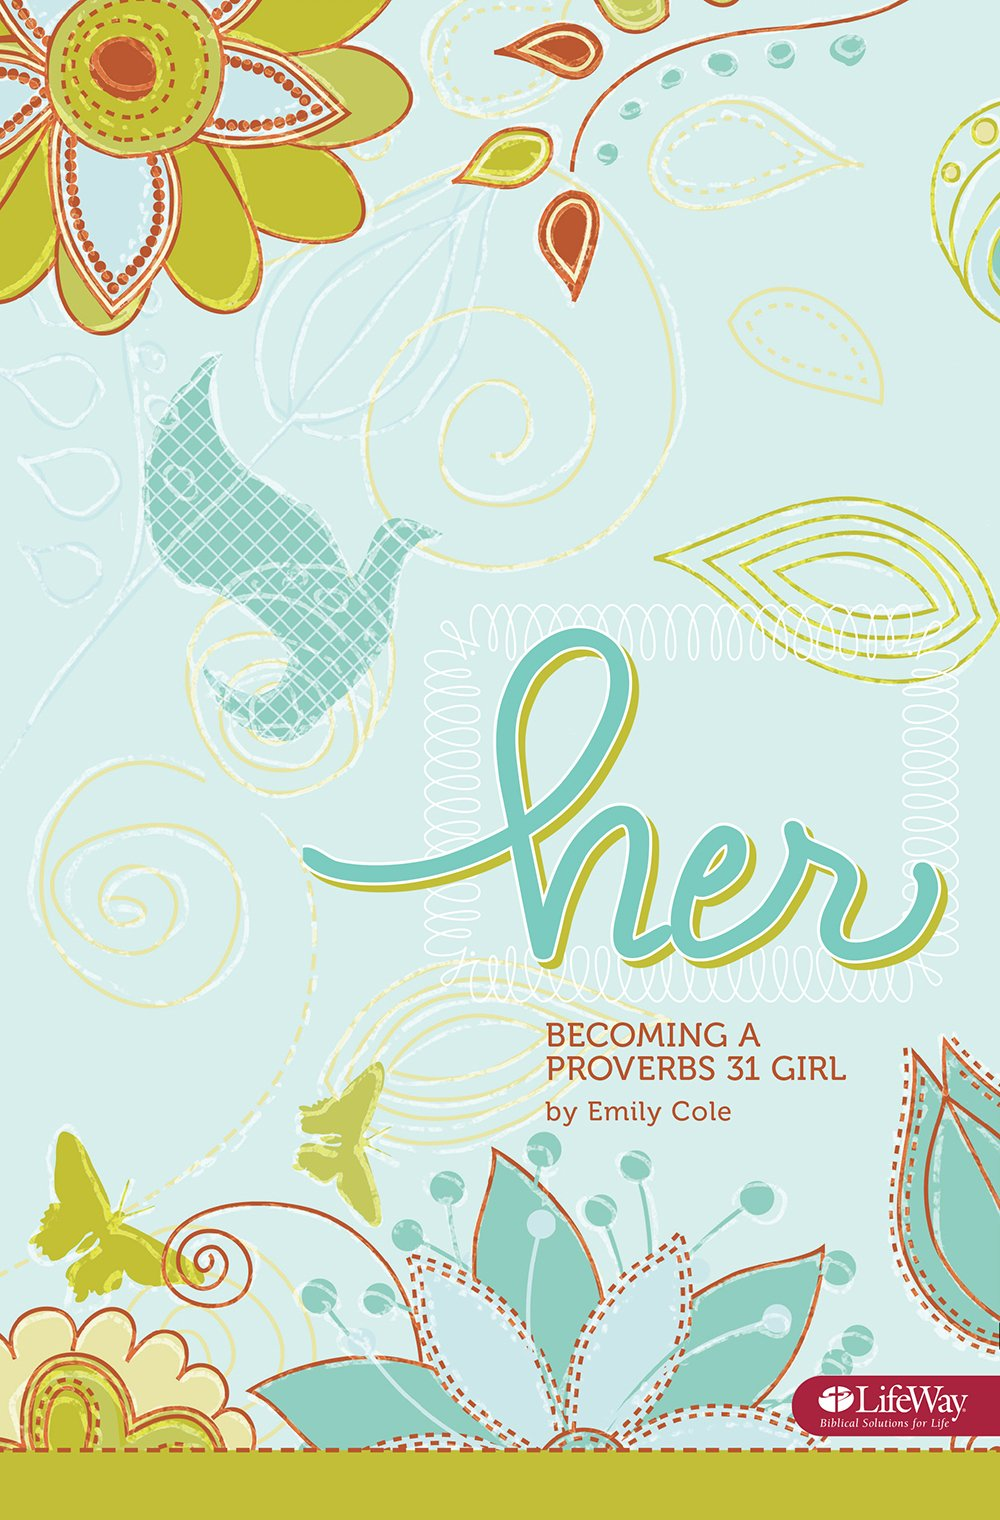 Her Becoming Proverbs 31 Girl product image